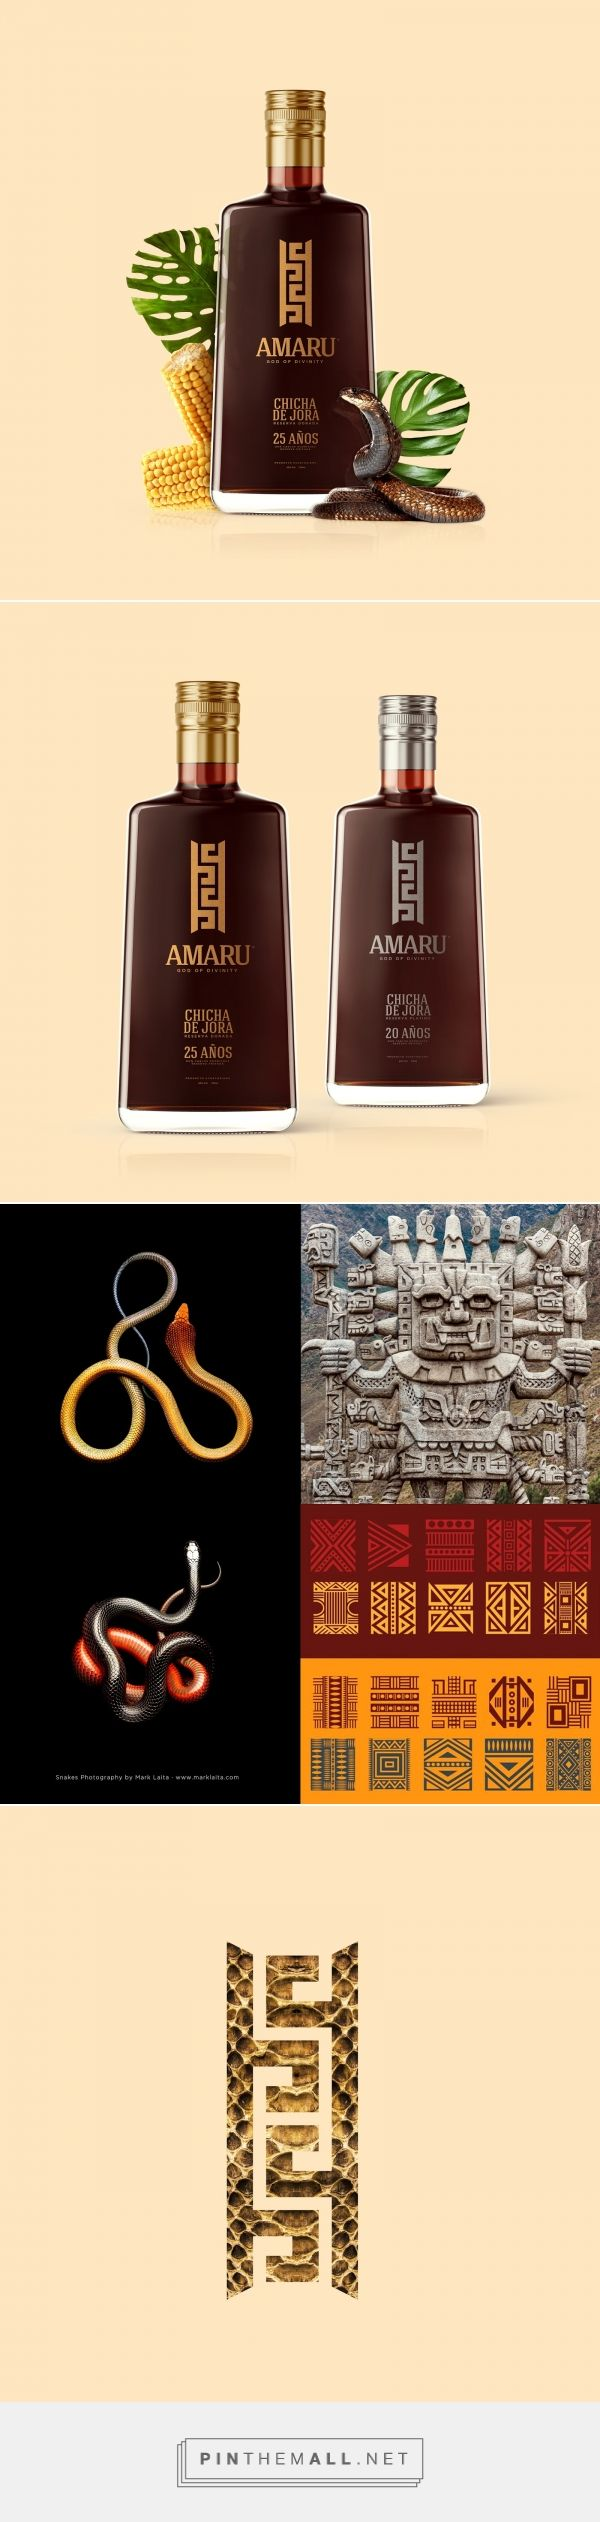 Amaru - Packaging of the World - Creative Package Design Gallery - http://www.packagingoftheworld.com/2017/10/amaru.html